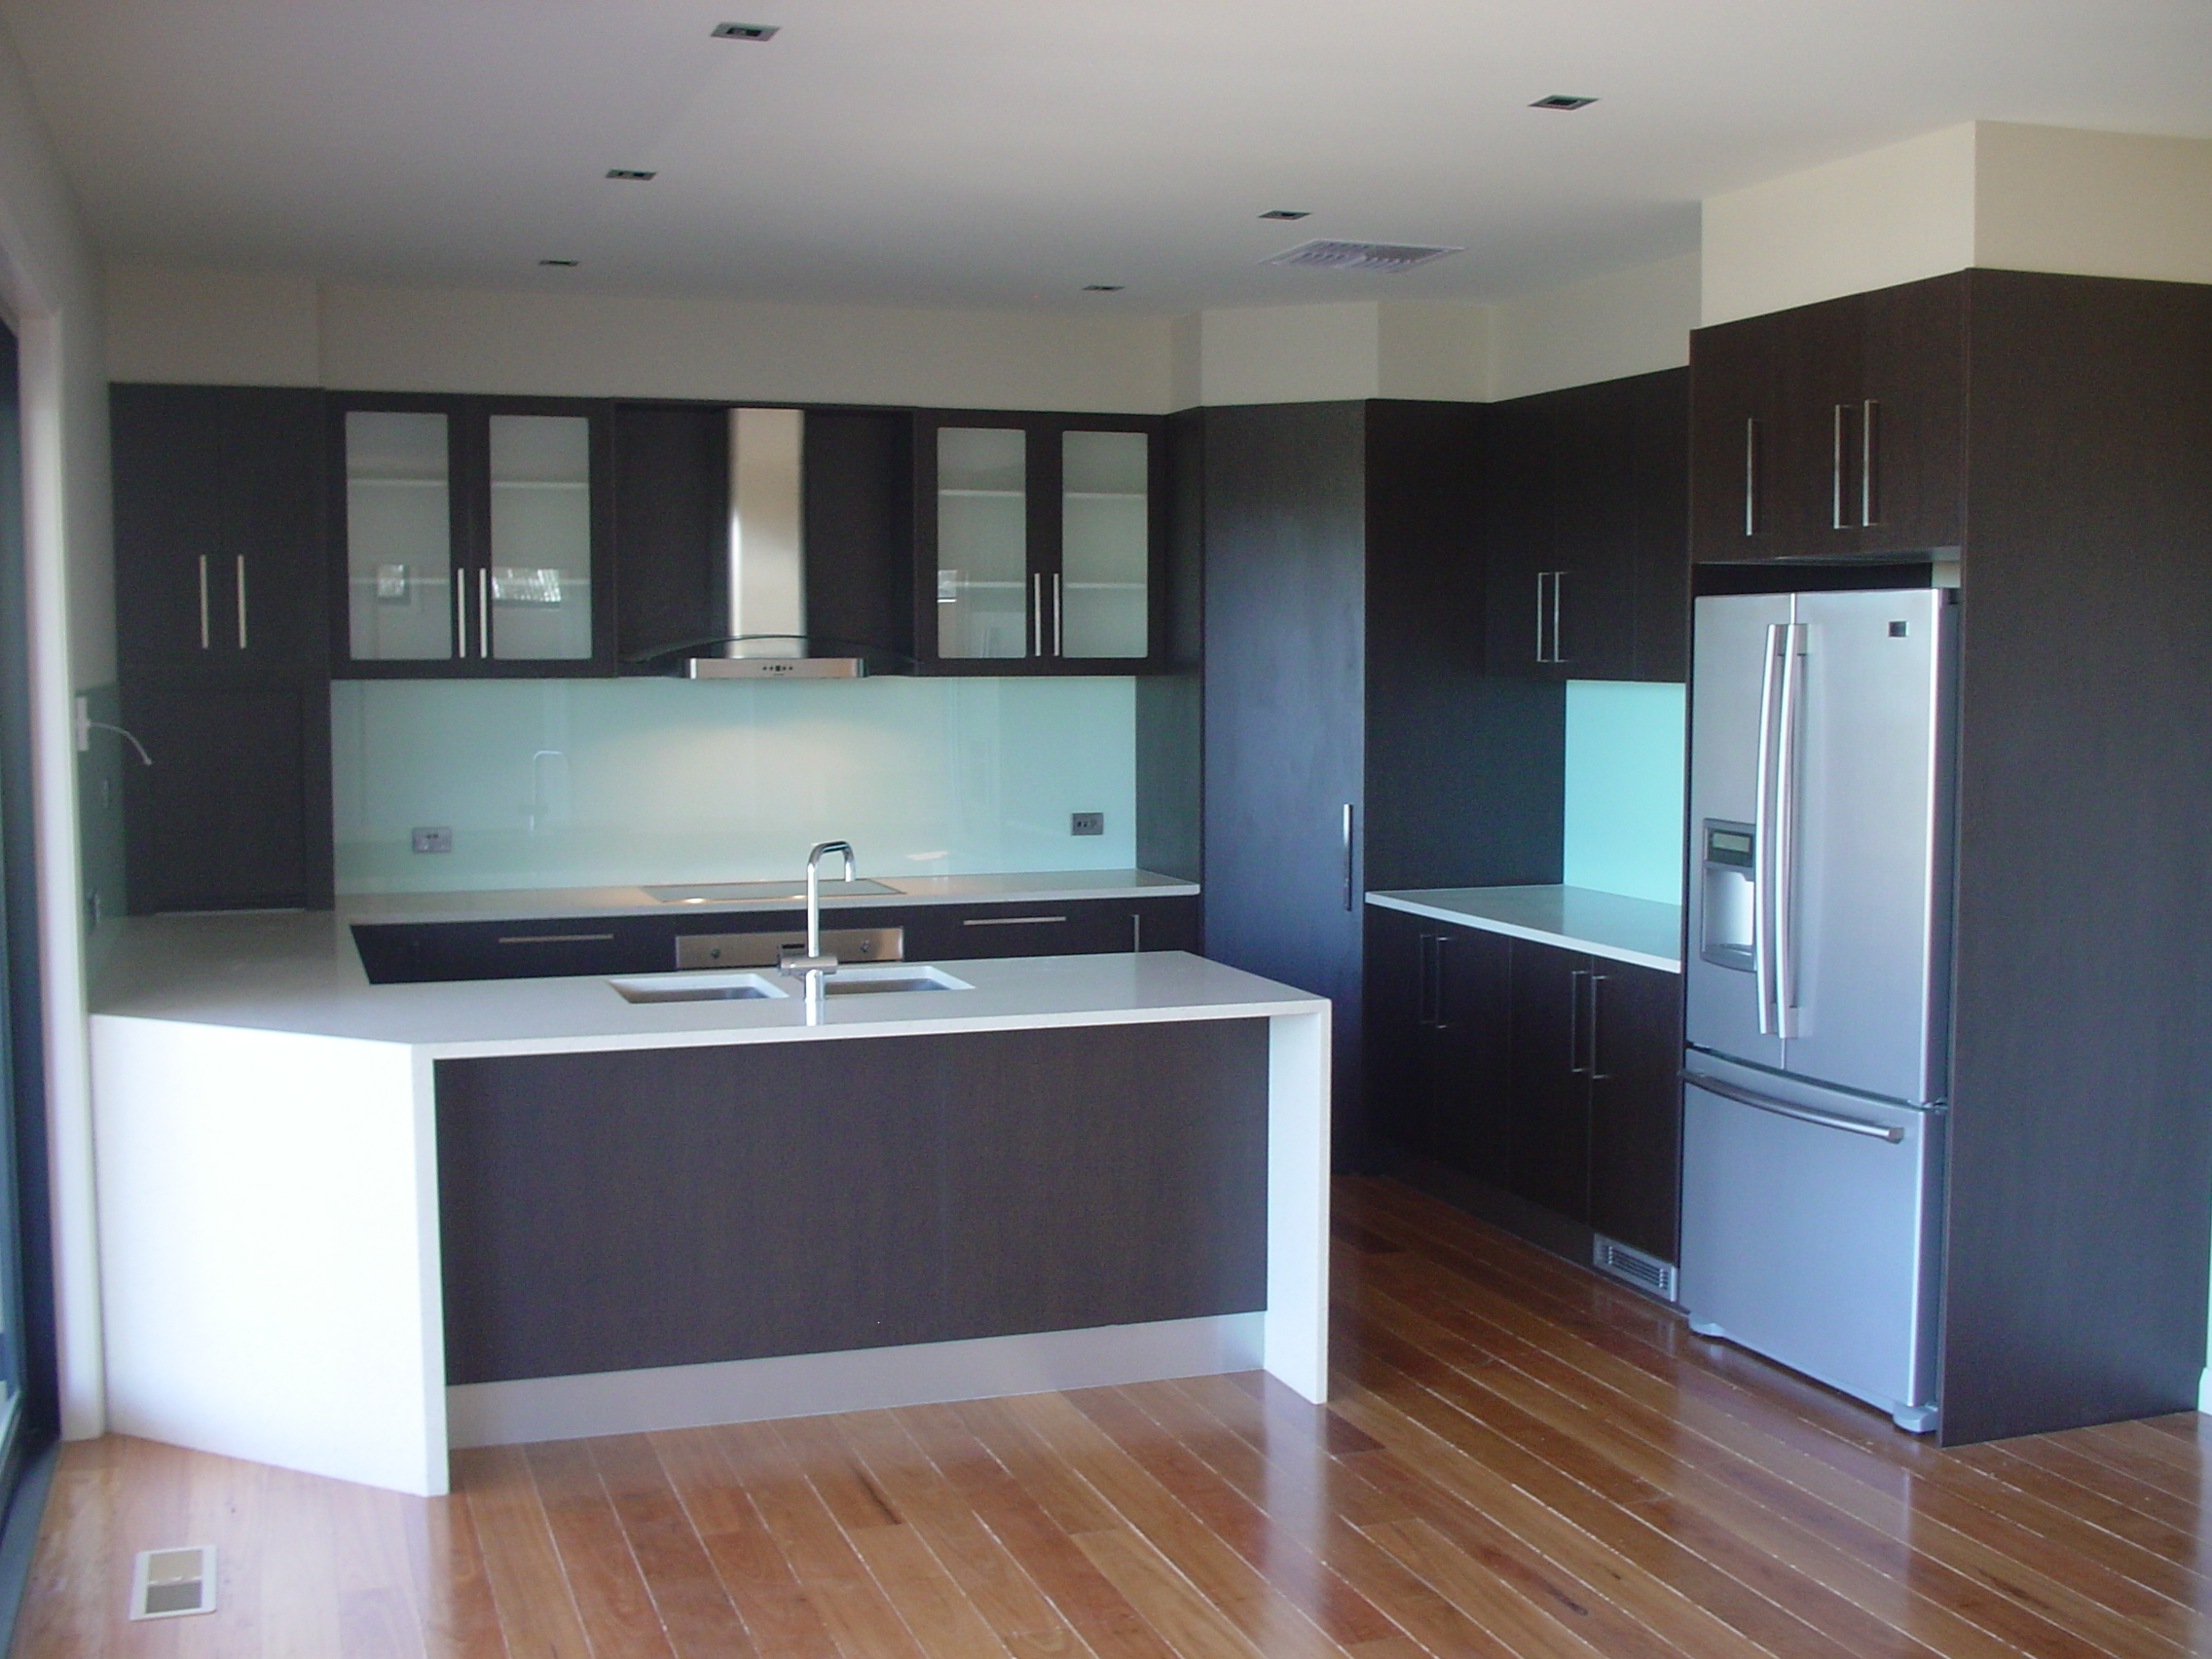 Pvc Laminates For Kitchen Cabinets